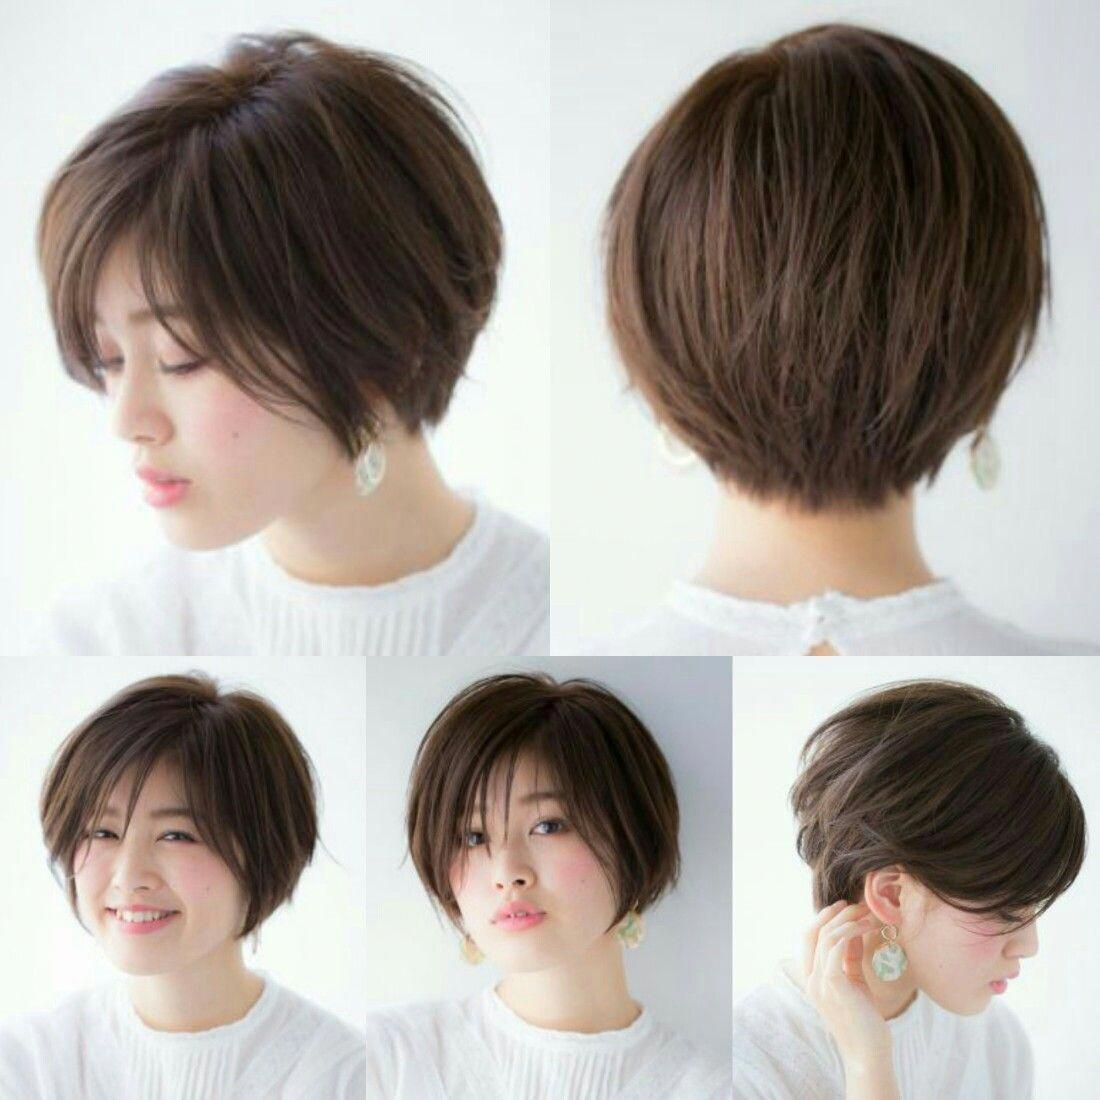 Asian Japanese Short Bob Haircut Bob Pixie Crop Shortfallhairstyles Asian Short Hair Short Hair Haircuts Japanese Short Hair